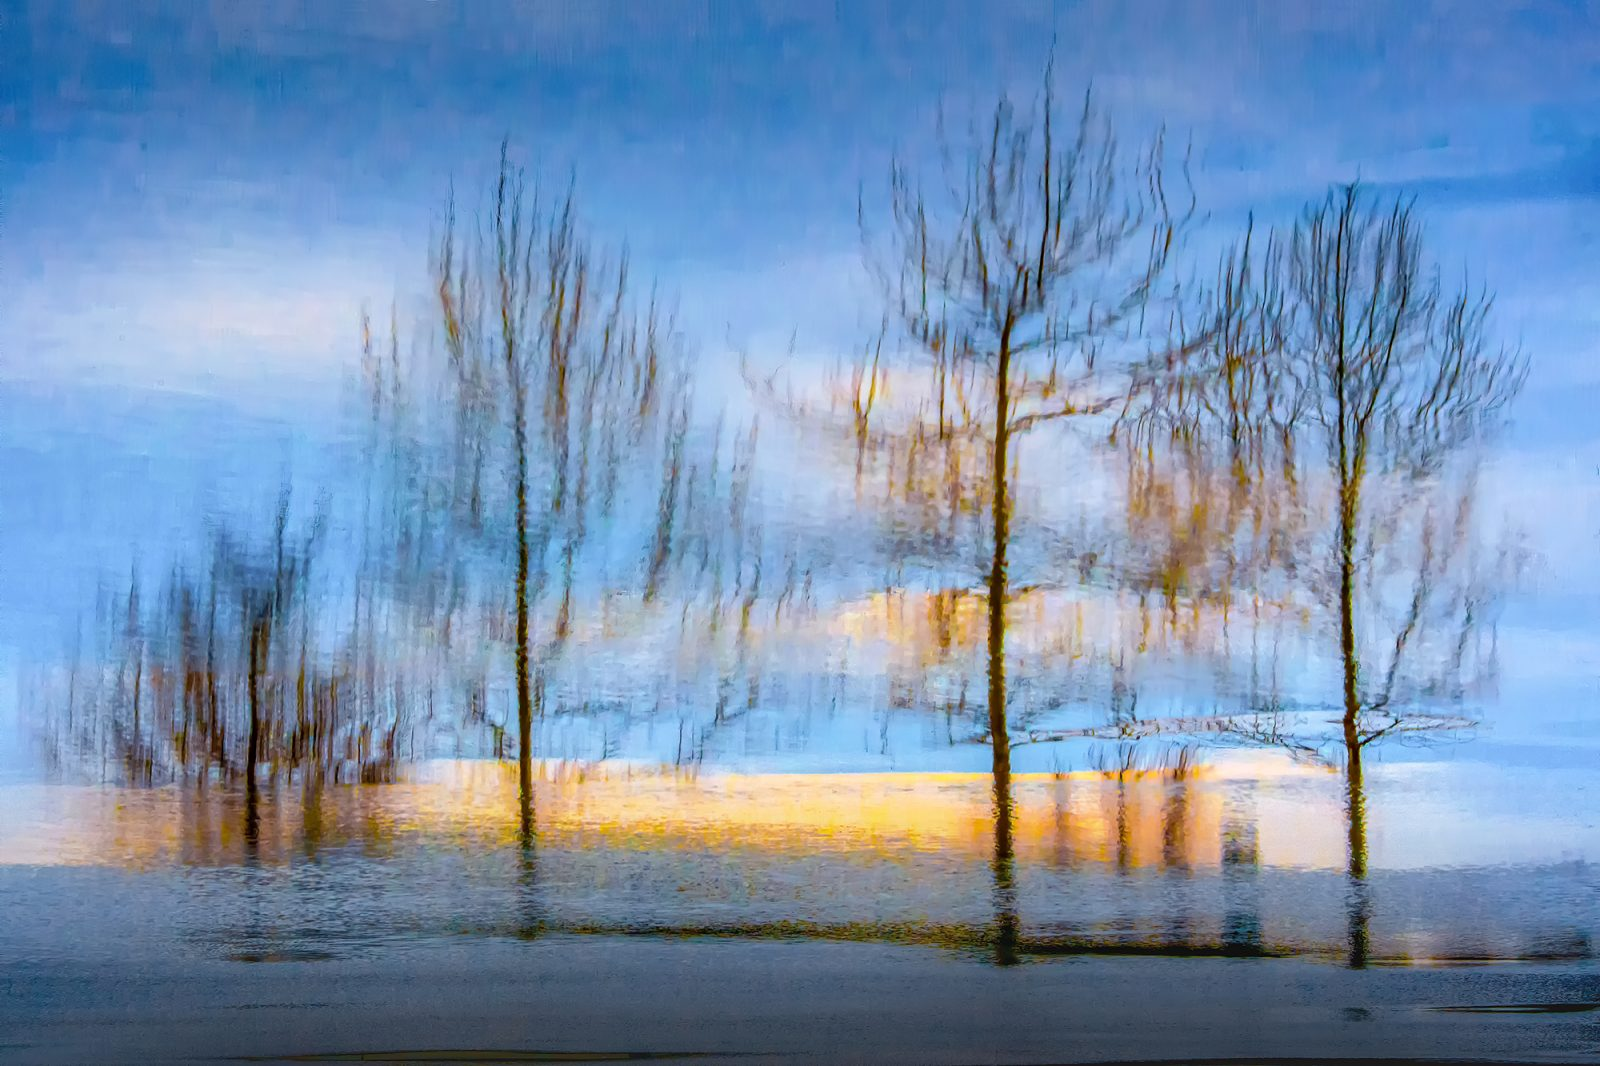 Scenery created by reflection